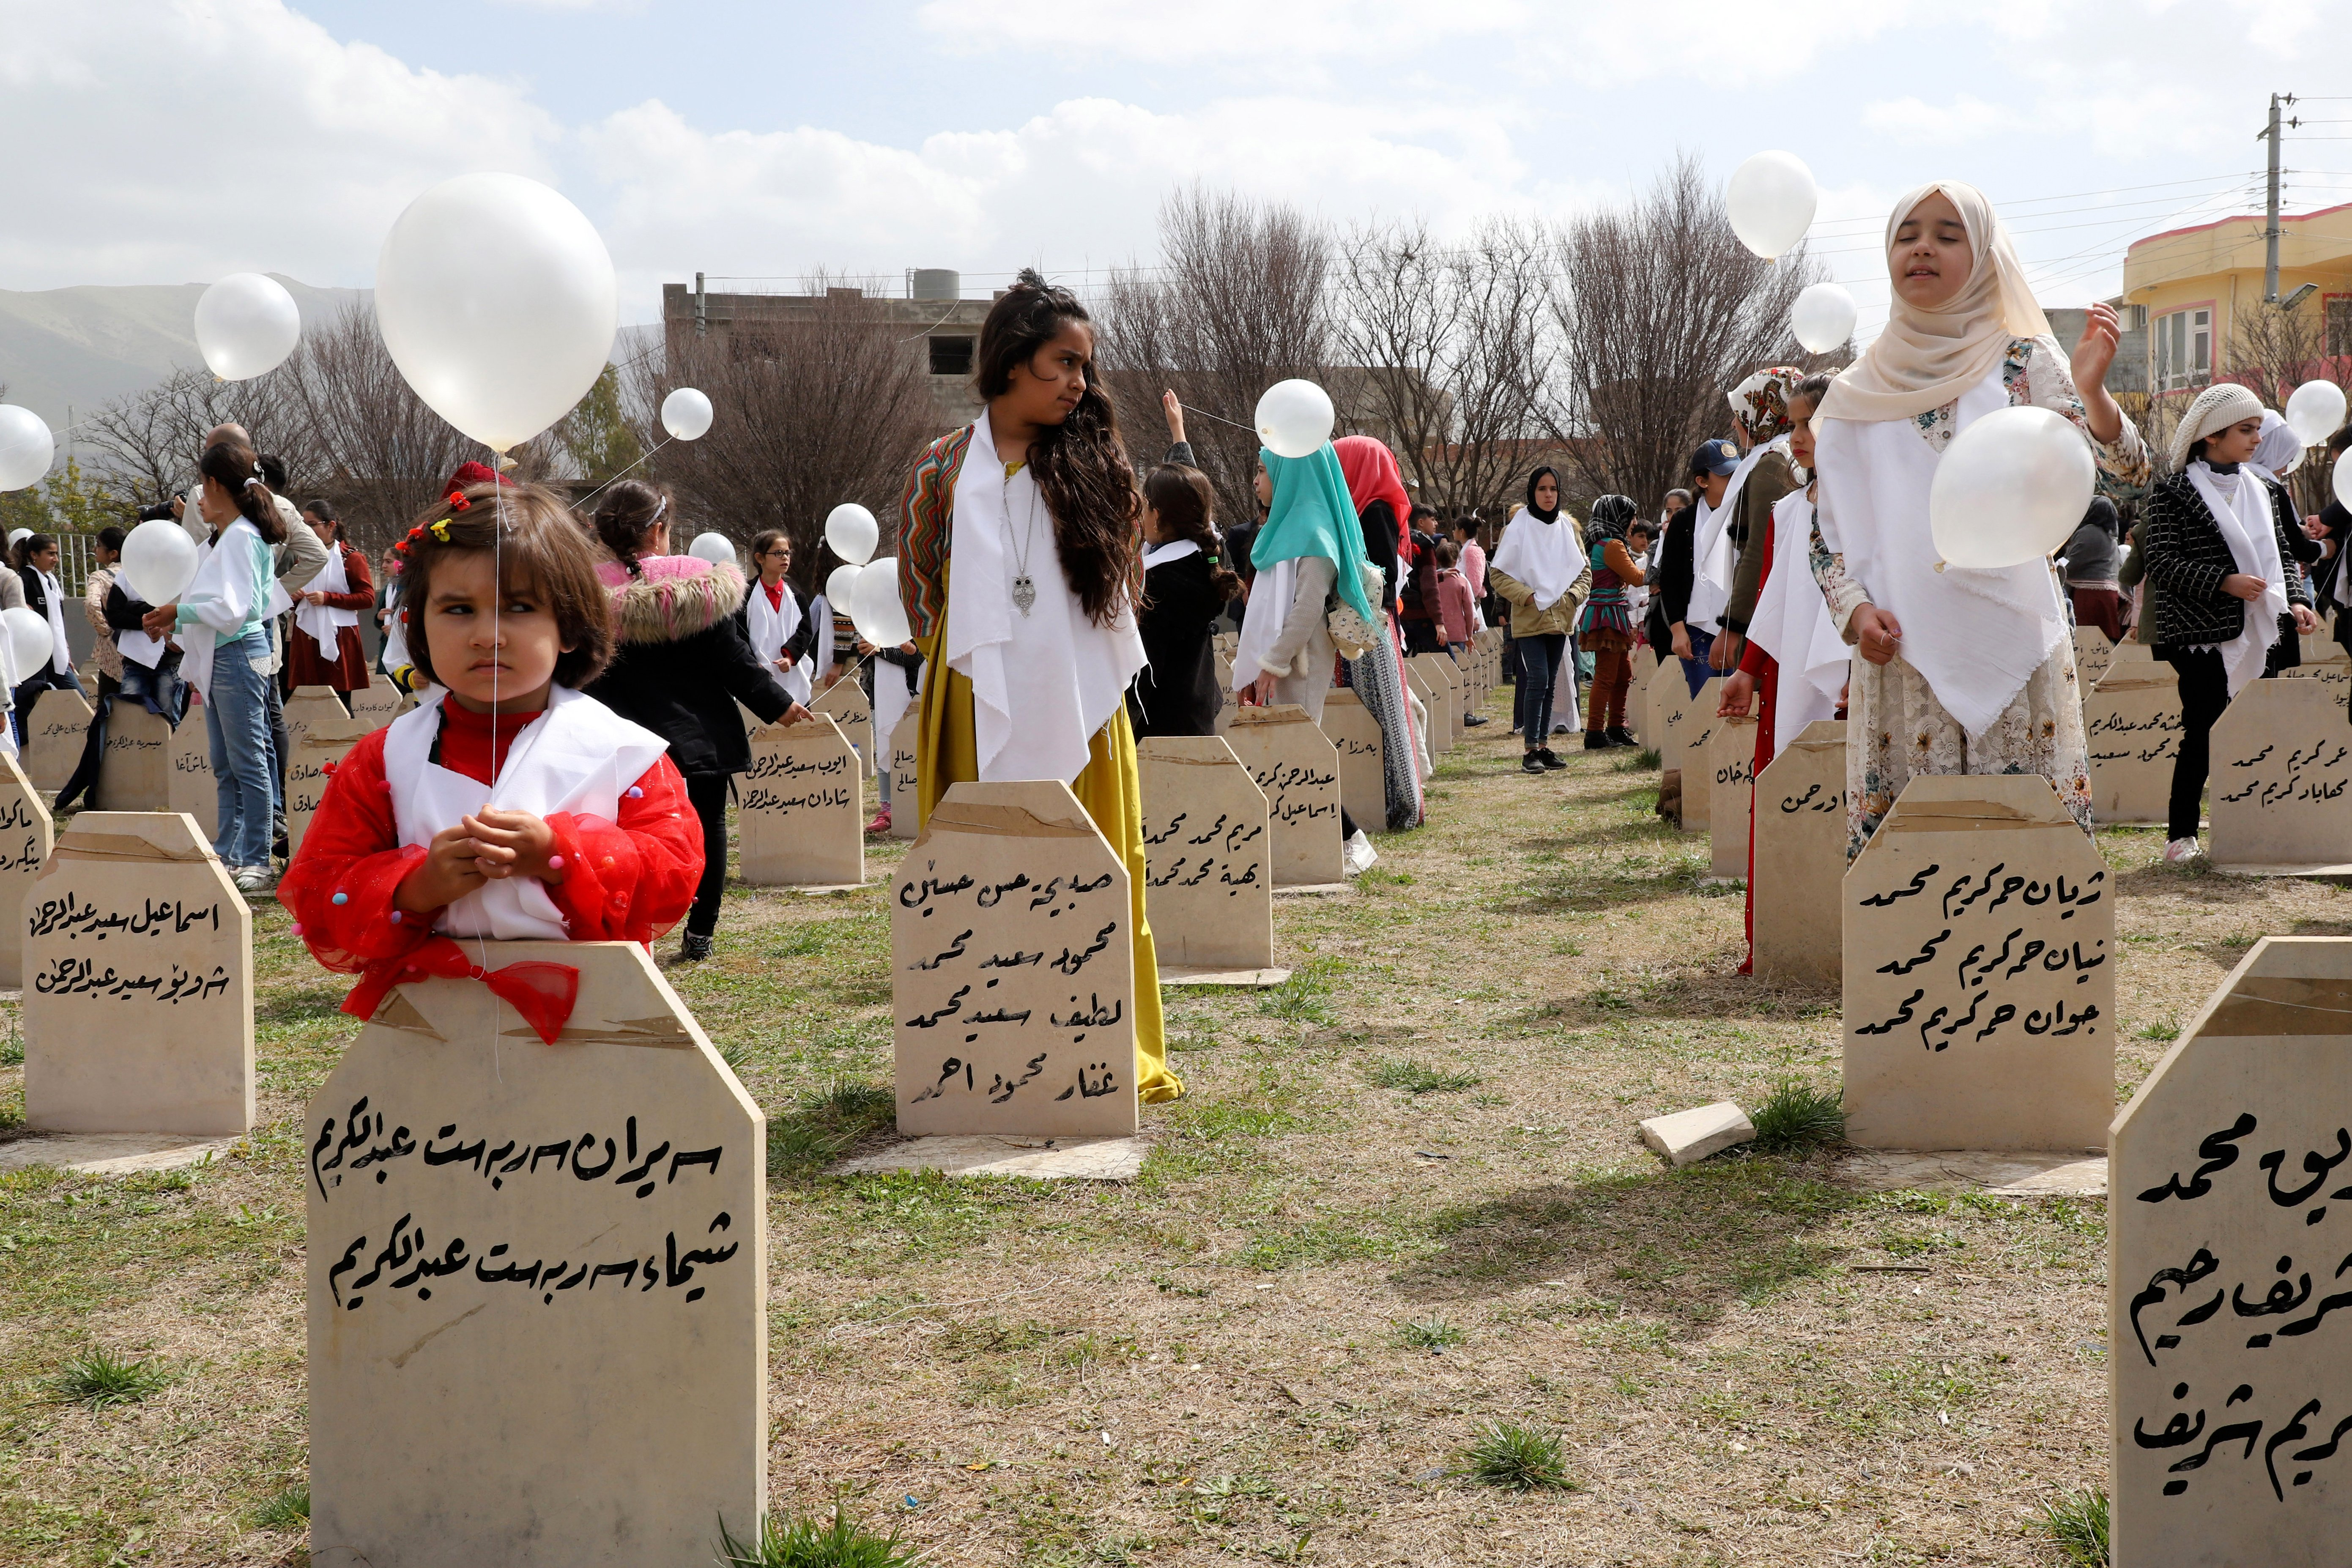 Iraqi-Kurds visit a grave site in Halabja near the monument for victims of the Halabja gas massacre that killed some 5,000 people as they mark the 31th anniversary of the attack (AFP)